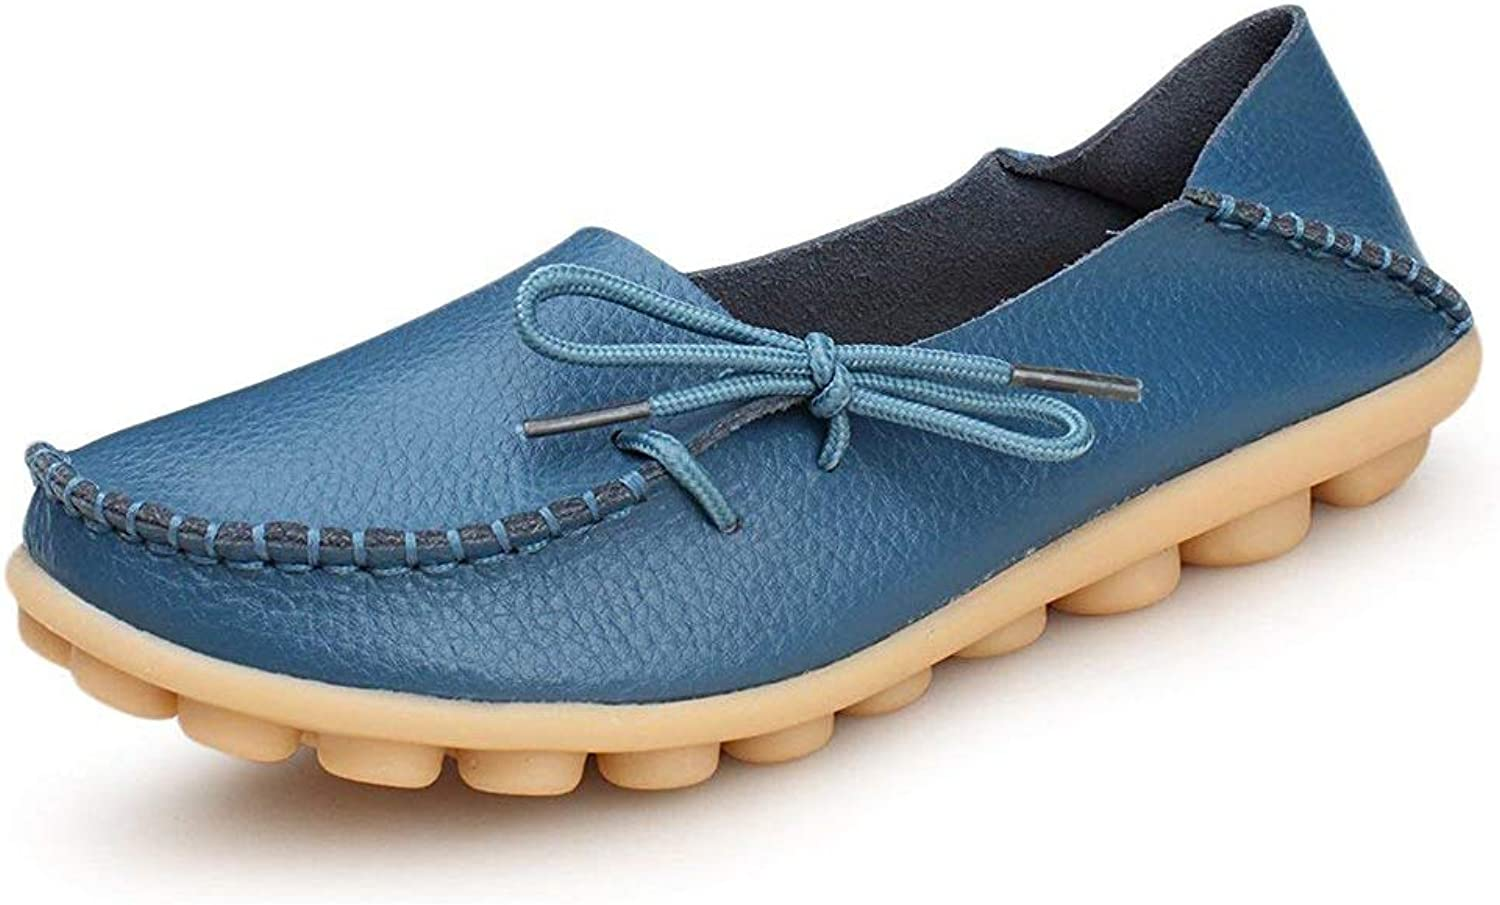 Vaganana Women's Leather Loafers Wild Driving Casual Flats shoes bluee